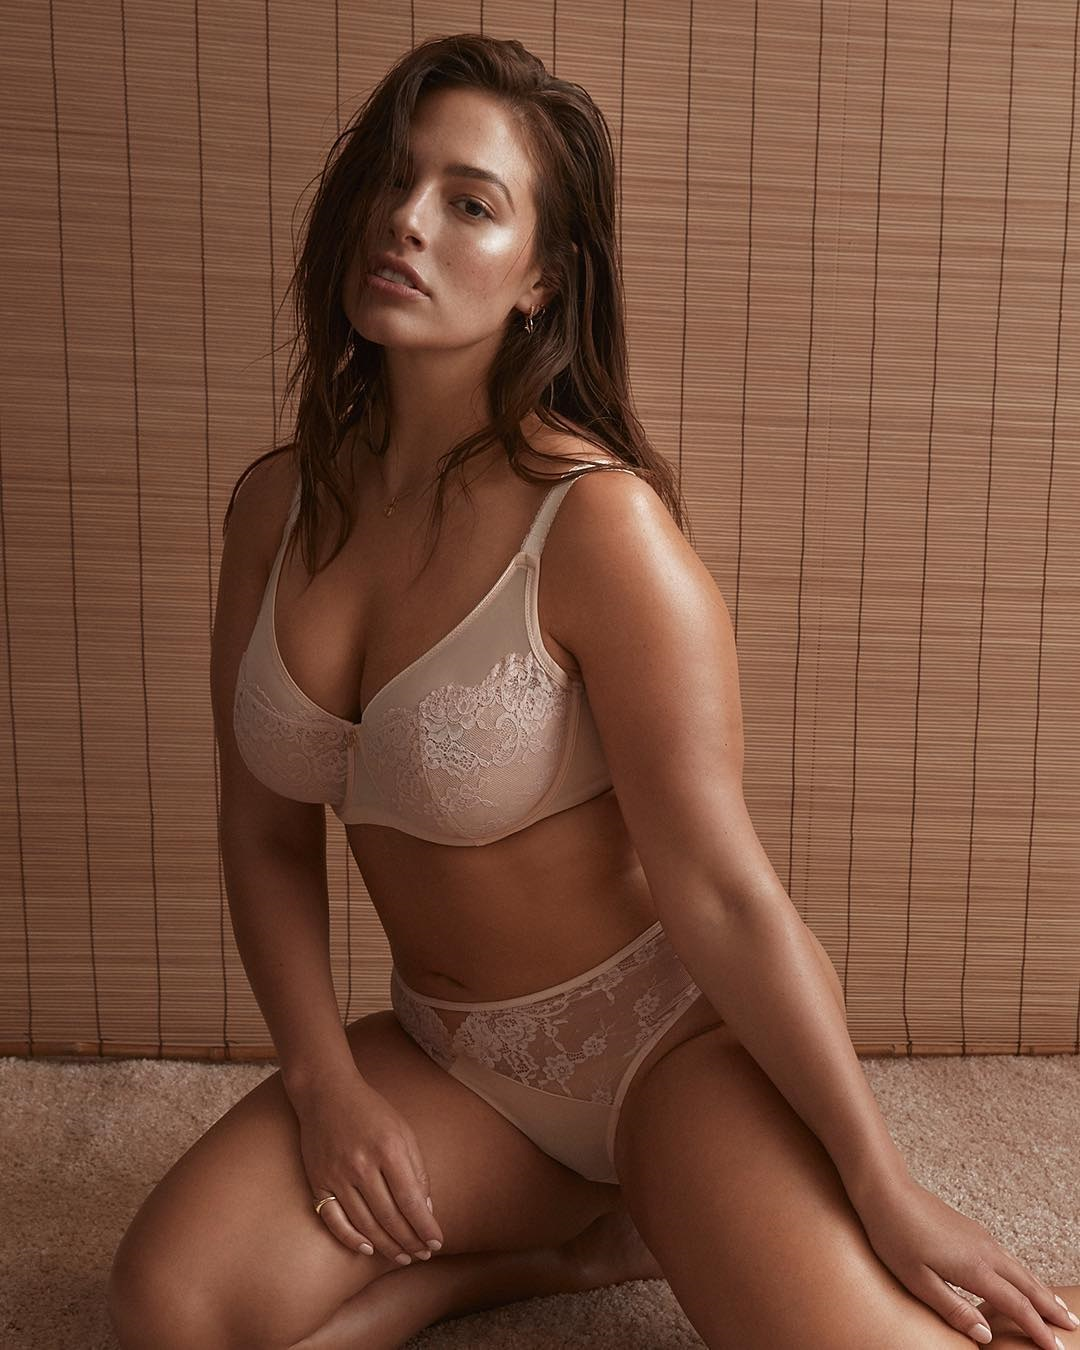 Ashley Graham proves her bombshell status as she models her own lingerie line in makeup-free photo